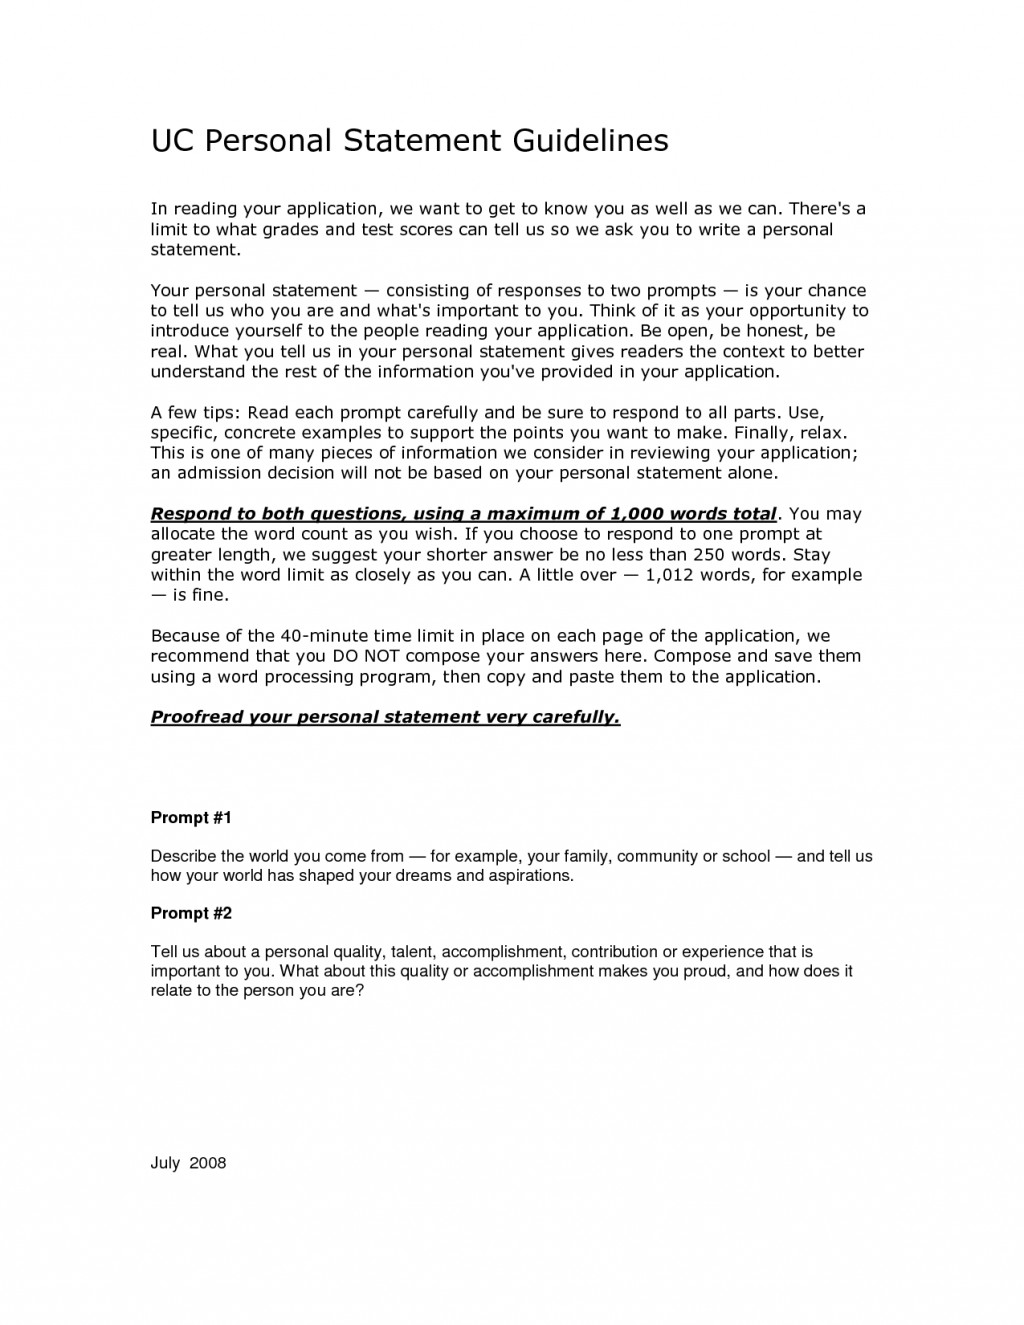 005 Uc Application Essay Examples Personal Statement College Admission Prompts Of Statements Template Cm3 App Prompt Ucf Texas Admissions Example Frightening Essays Transfer 2017 Collegevine Large